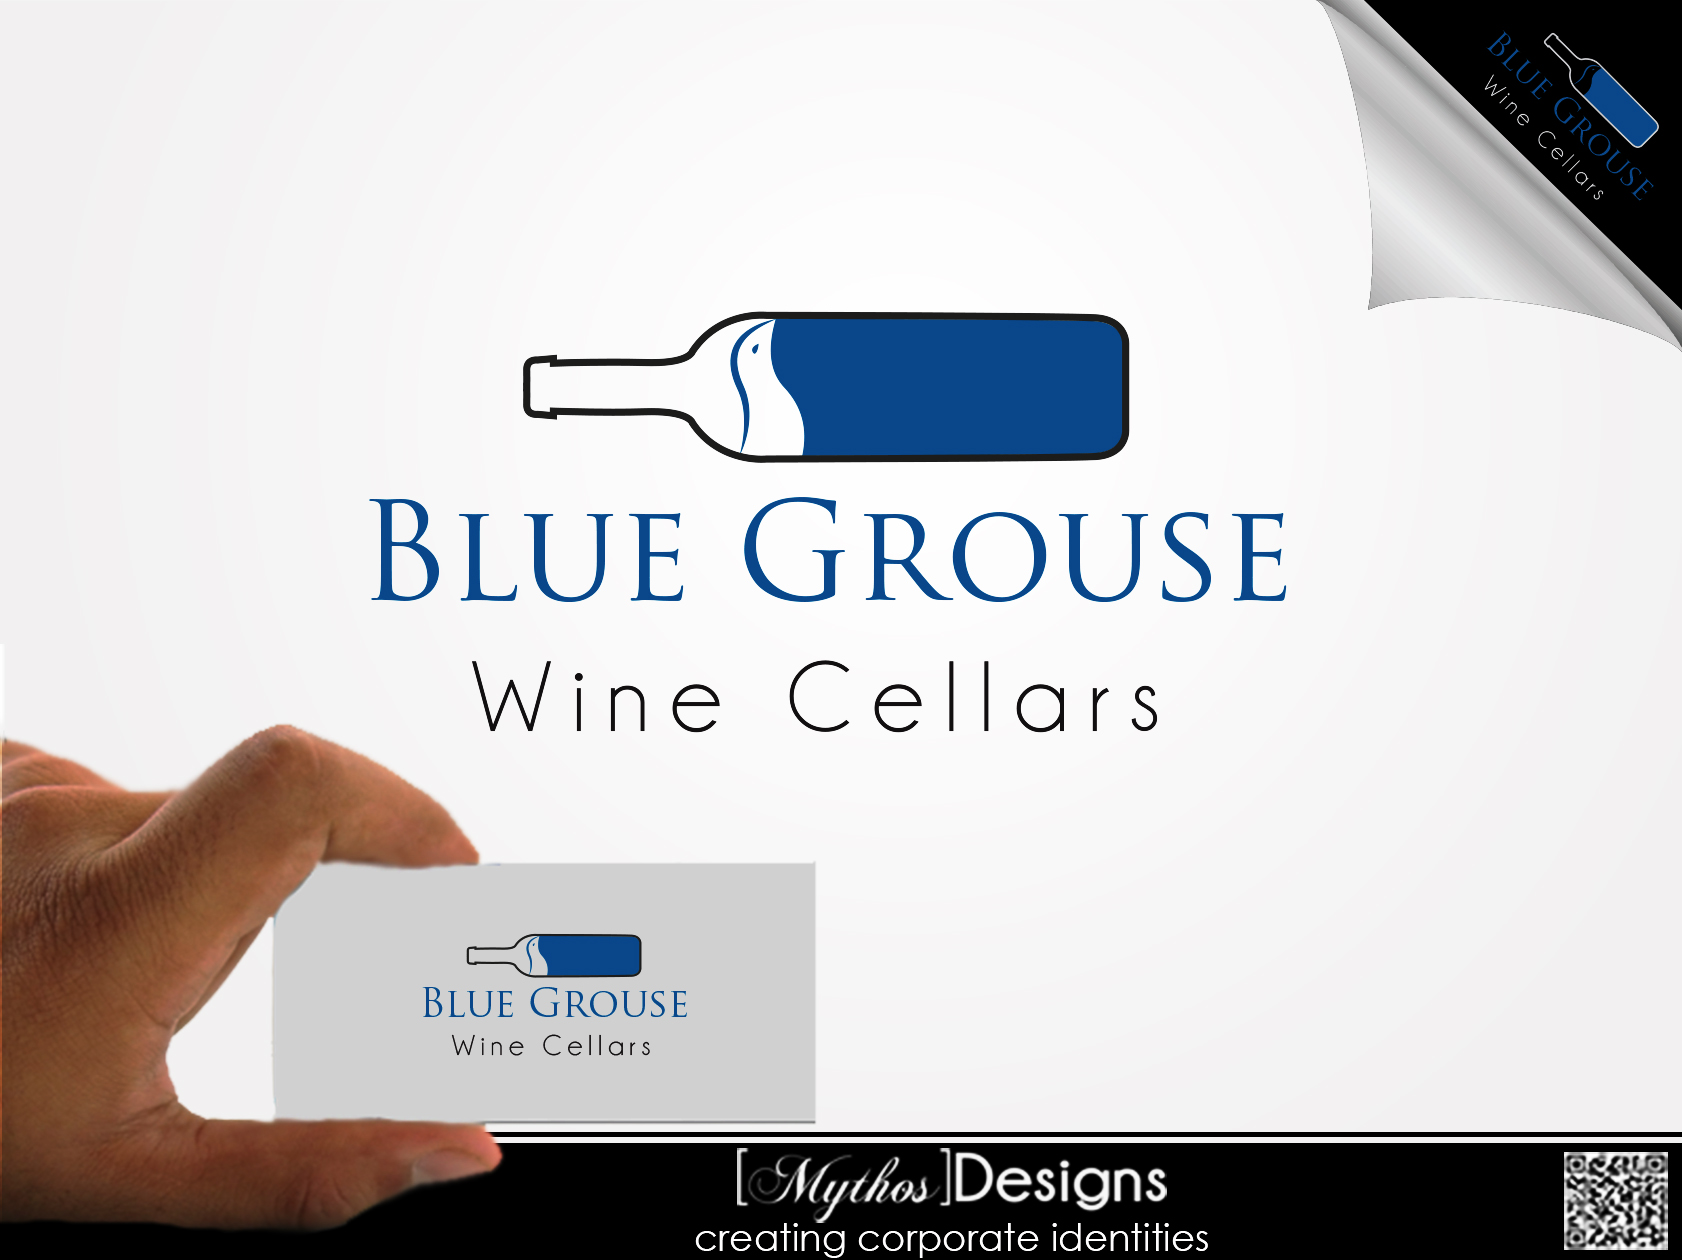 Logo Design by Mythos Designs - Entry No. 8 in the Logo Design Contest Creative Logo Design for Blue Grouse Wine Cellars.